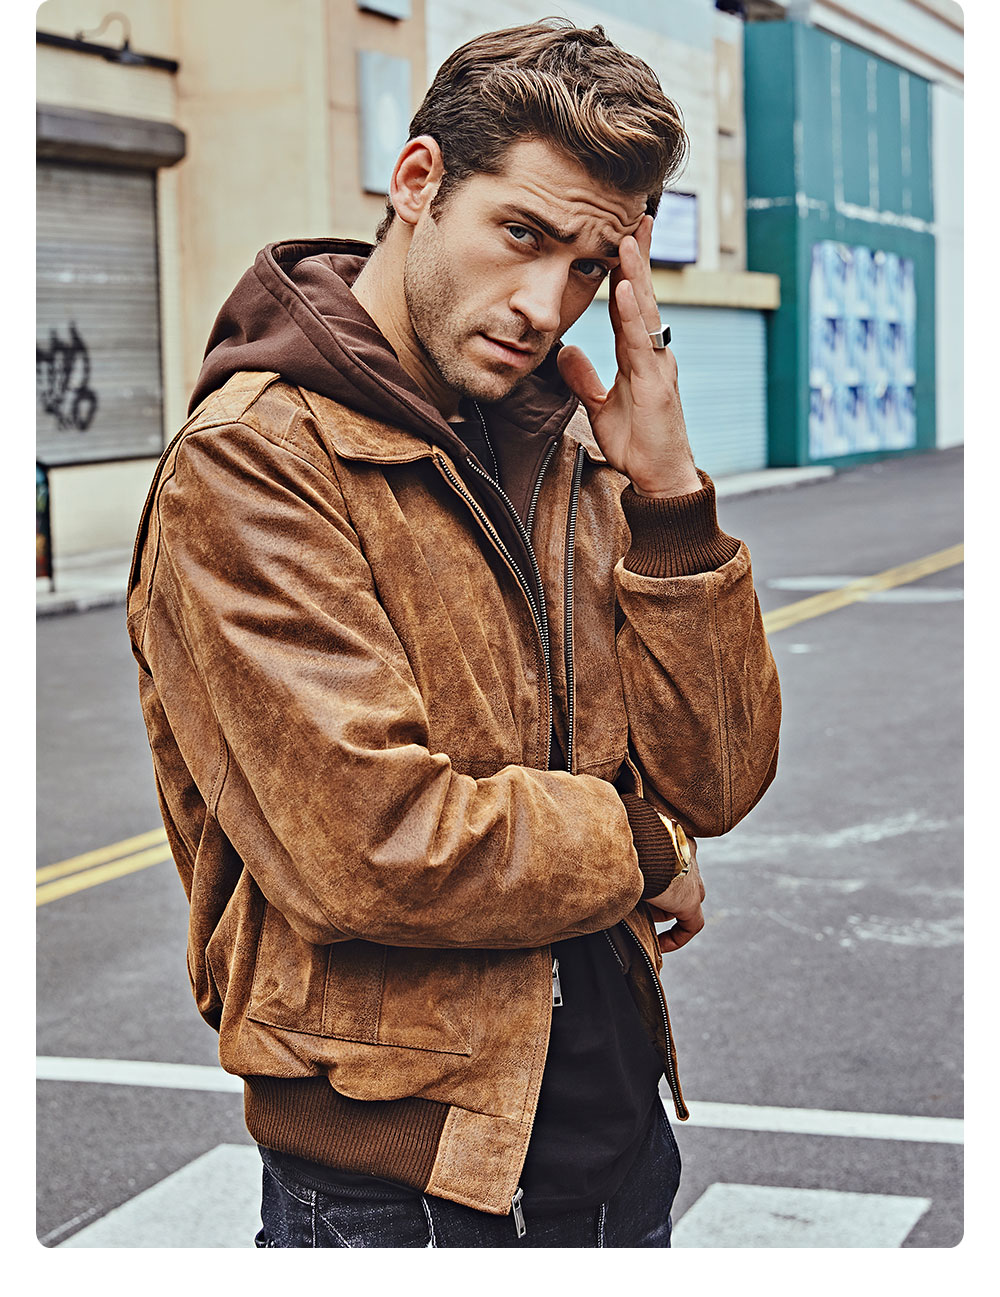 H81031aa7668d4a97b25c7e43b288a682Q FLAVOR New Men's Genuine Leather Bomber Jackets Removable Hood Men Air Forca Aviator winter coat Men Warm Real Leather Jacket